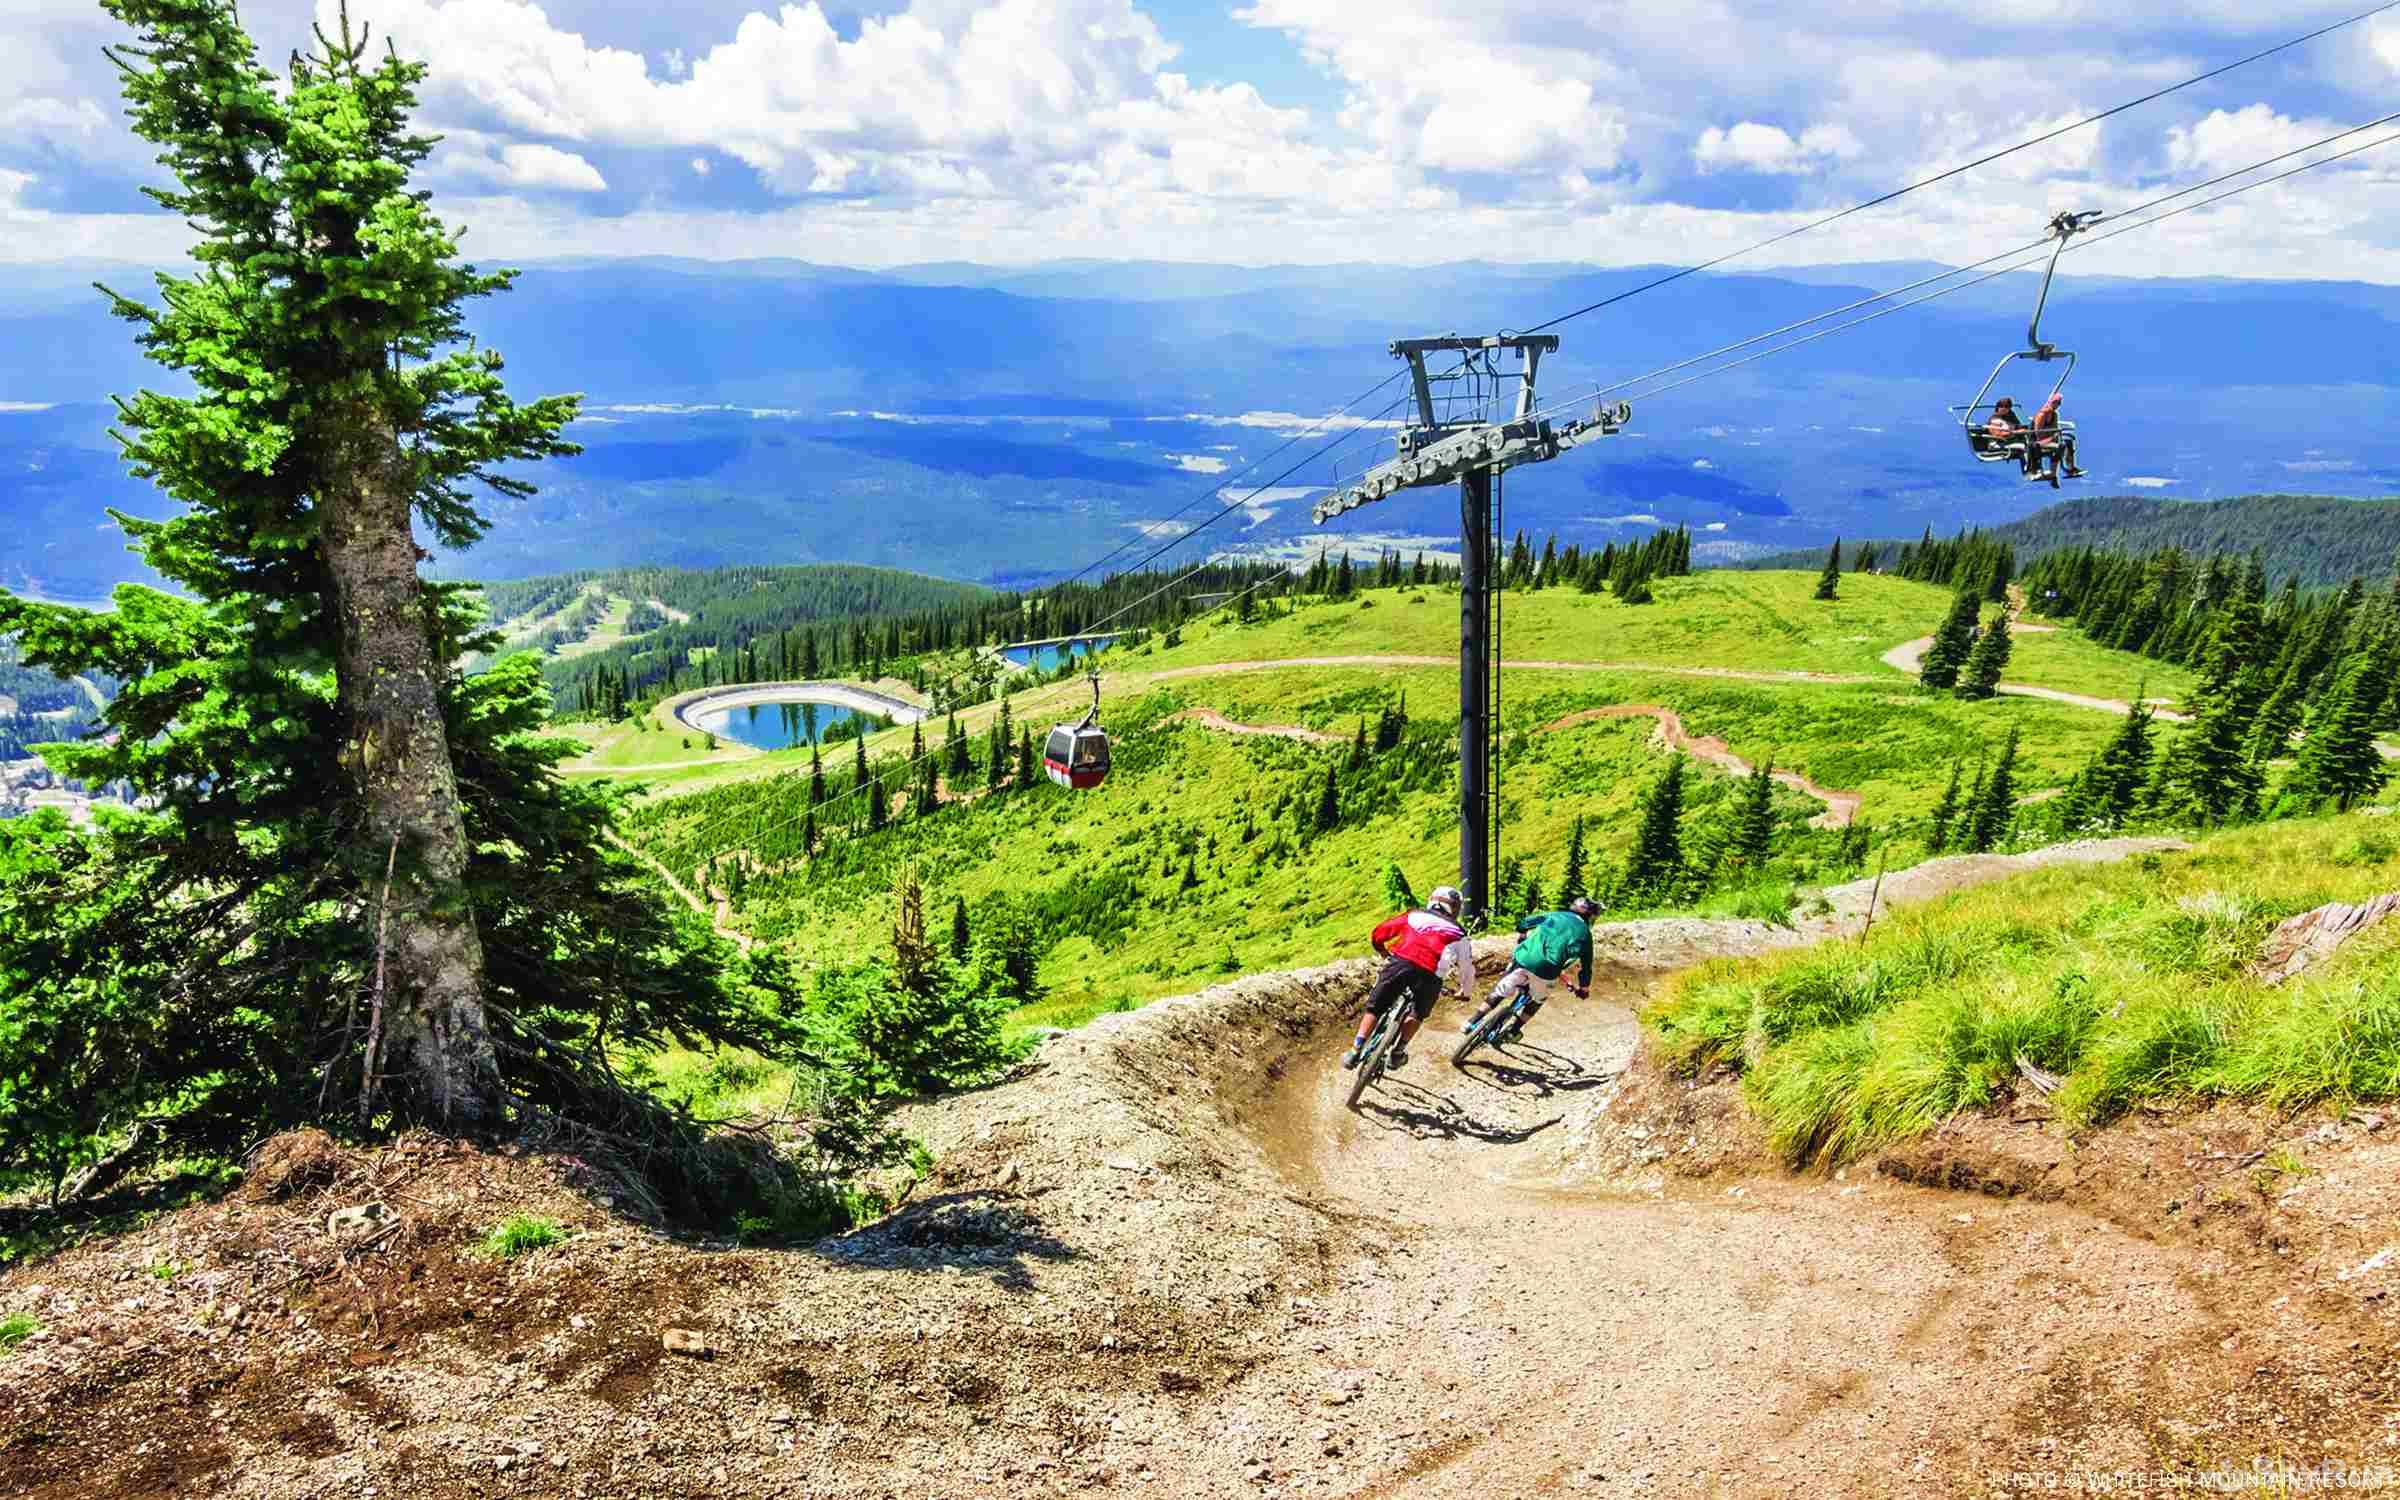 Wrangler Loft Head up to Whitefish Ski Resort - only 15 minutes away for incredible views and mountain biking!